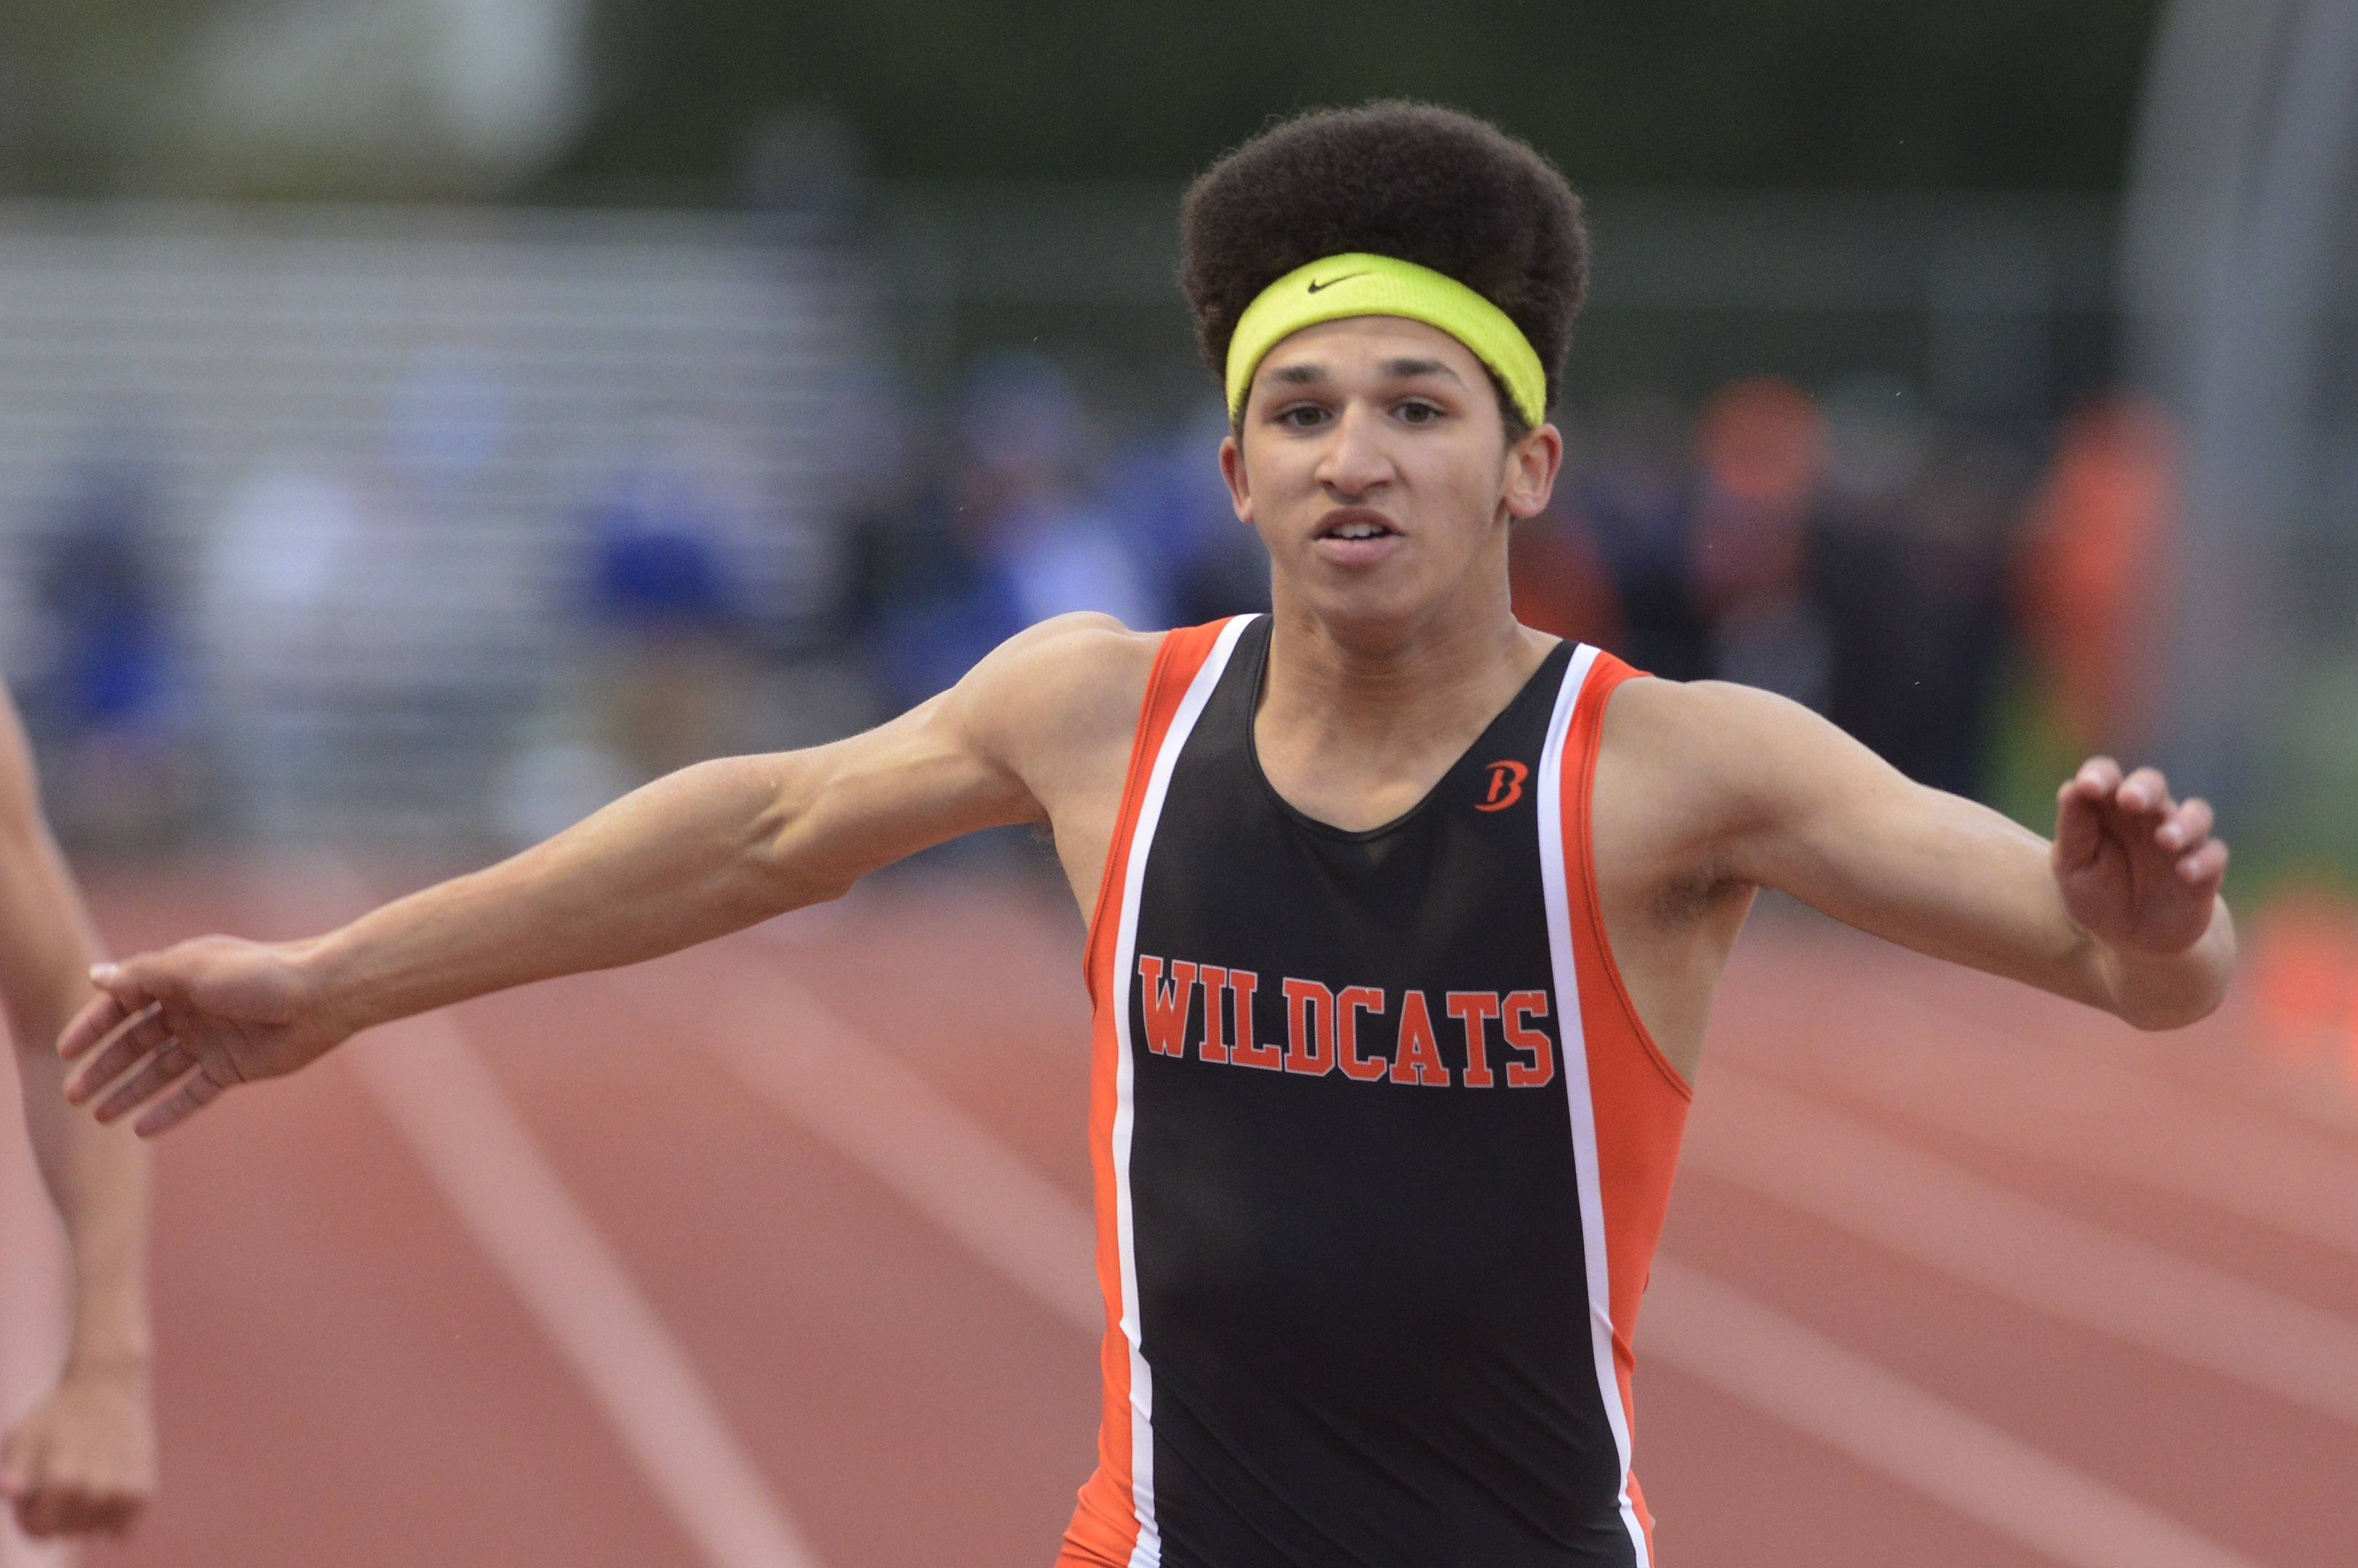 Keith Wilson of Libertyville crosses the finish line in the 200-meter dash prelims during the Wanner Invitational at Prospect on Friday.